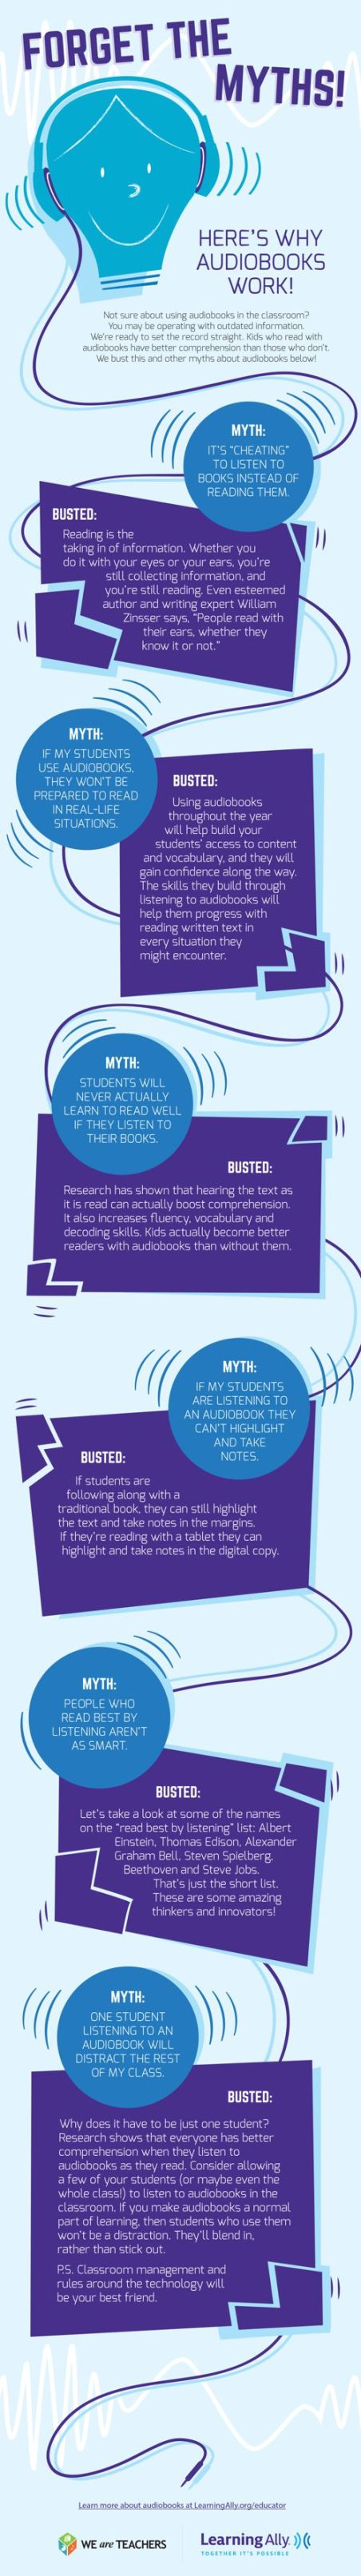 audiobooks-forget-the-myths-infographic-html